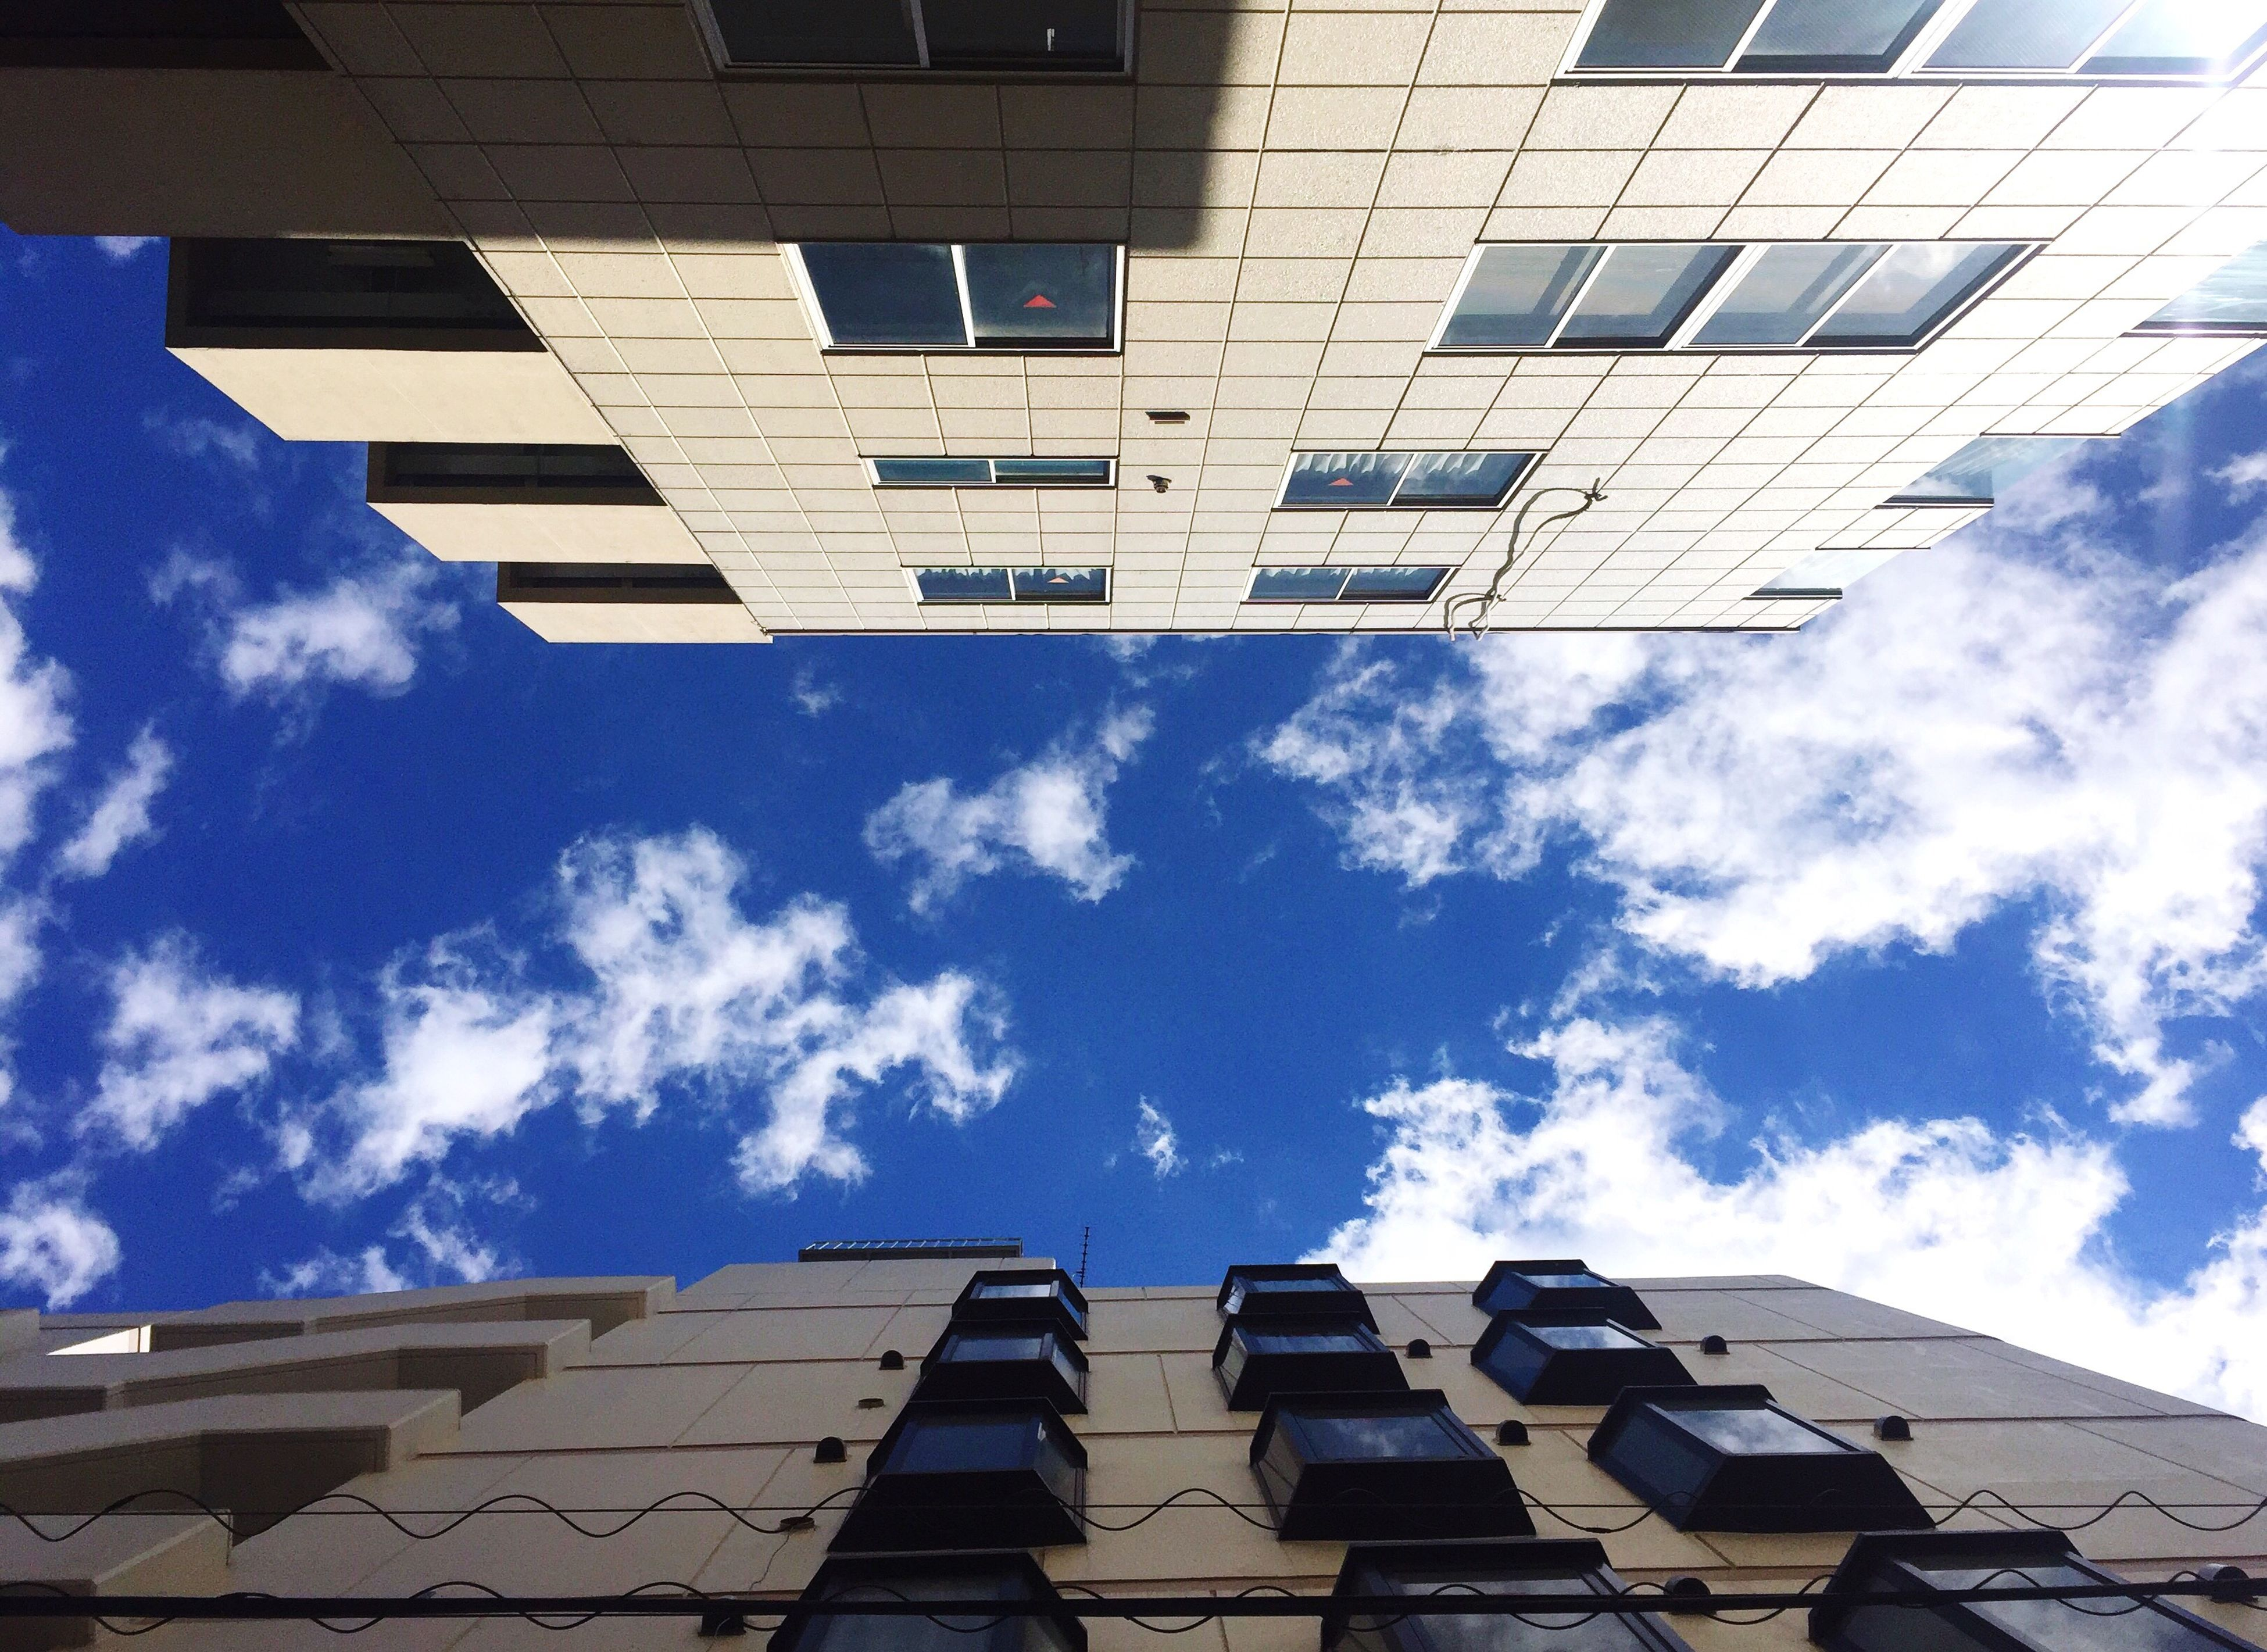 architecture, low angle view, building exterior, sky, cloud - sky, built structure, no people, day, outdoors